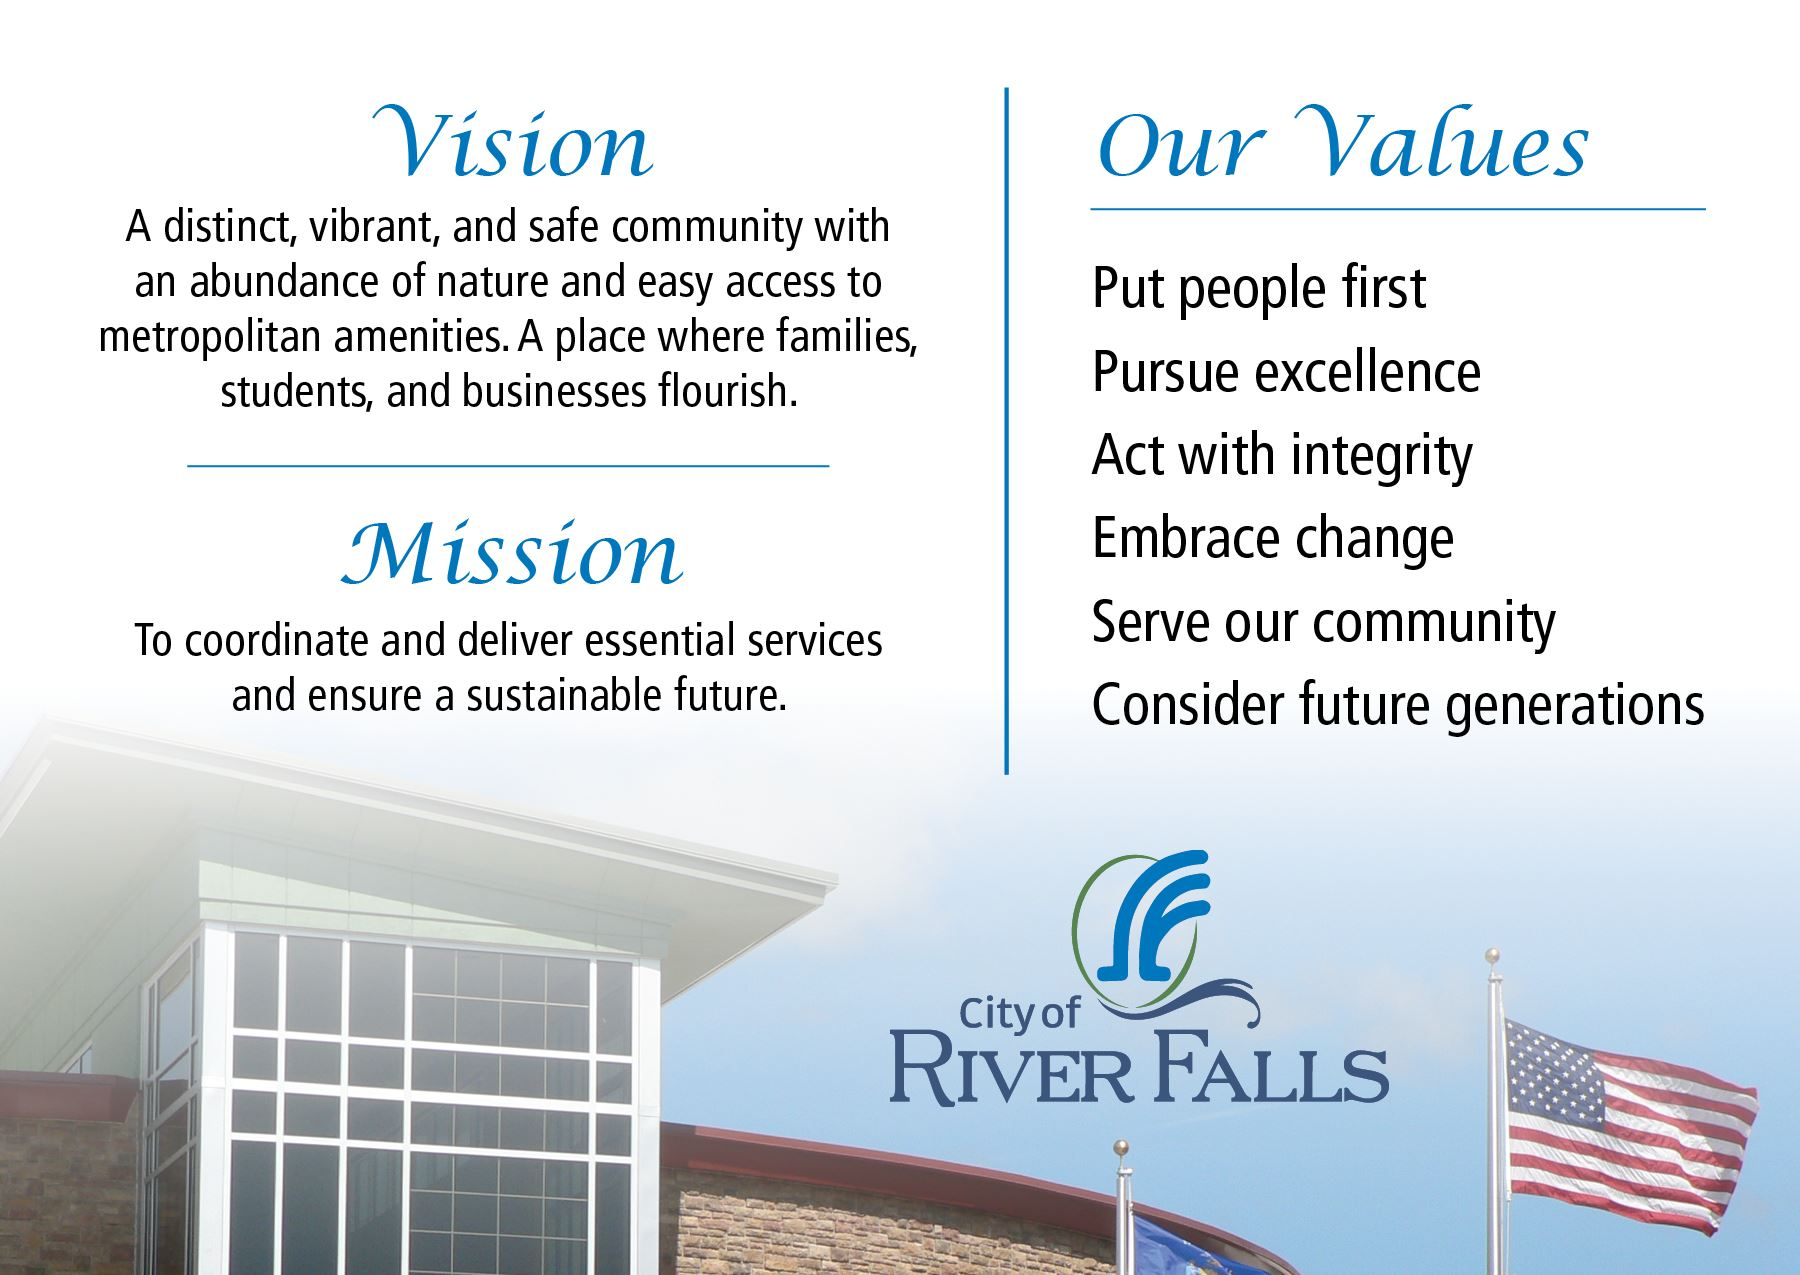 Values Statement Graphic